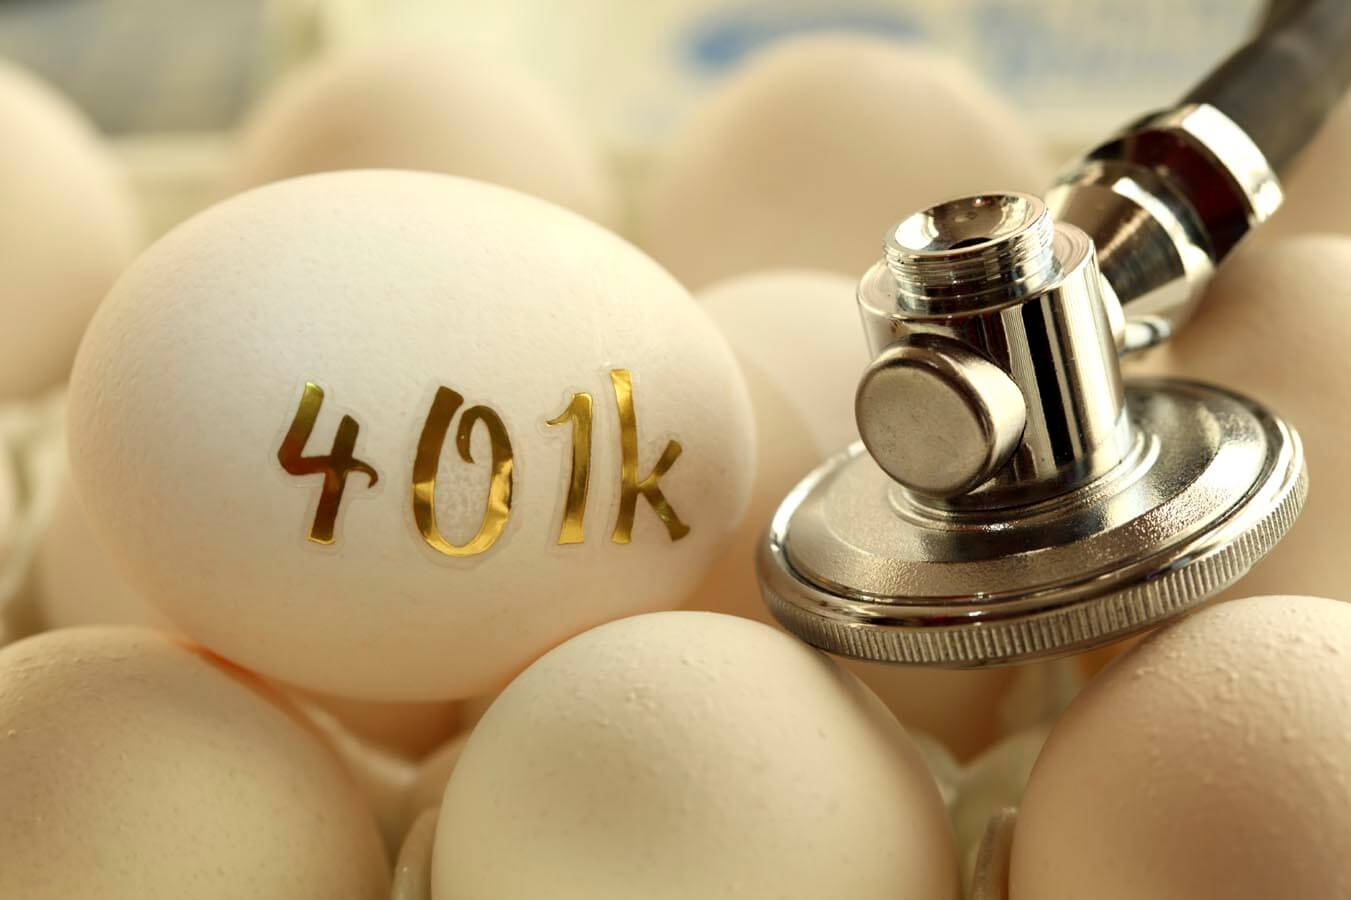 How healthy are your 401k retirement savings?